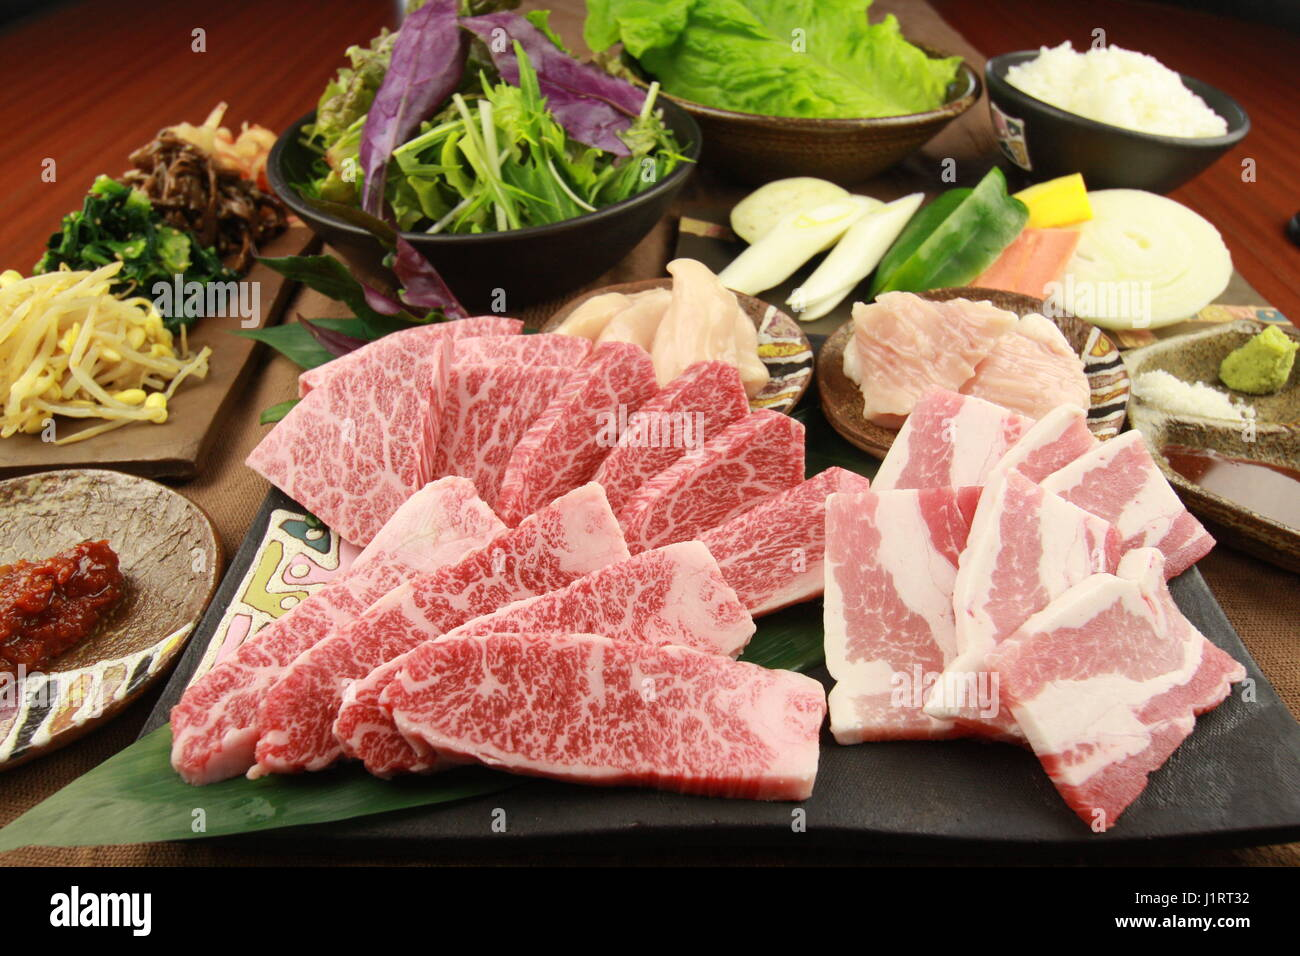 Fresh sliced beef with vegetables on tables in the kitchen Stock Photo